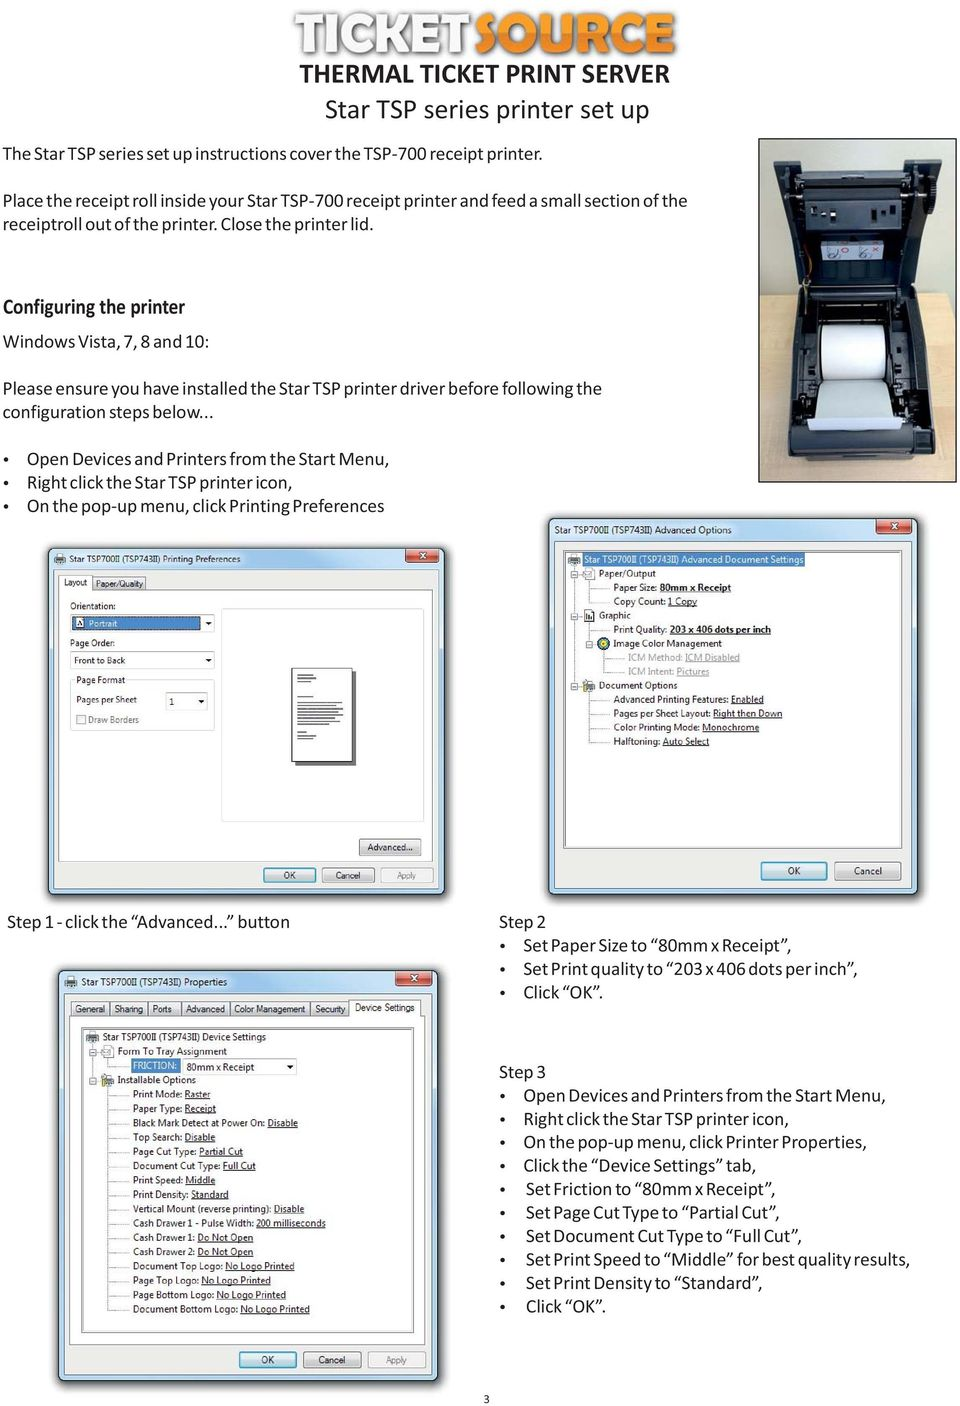 Configuring the printer Windows Vista, 7, 8 and 10: Please ensure you have installed the Star TSP printer driver before following the configuration steps below.